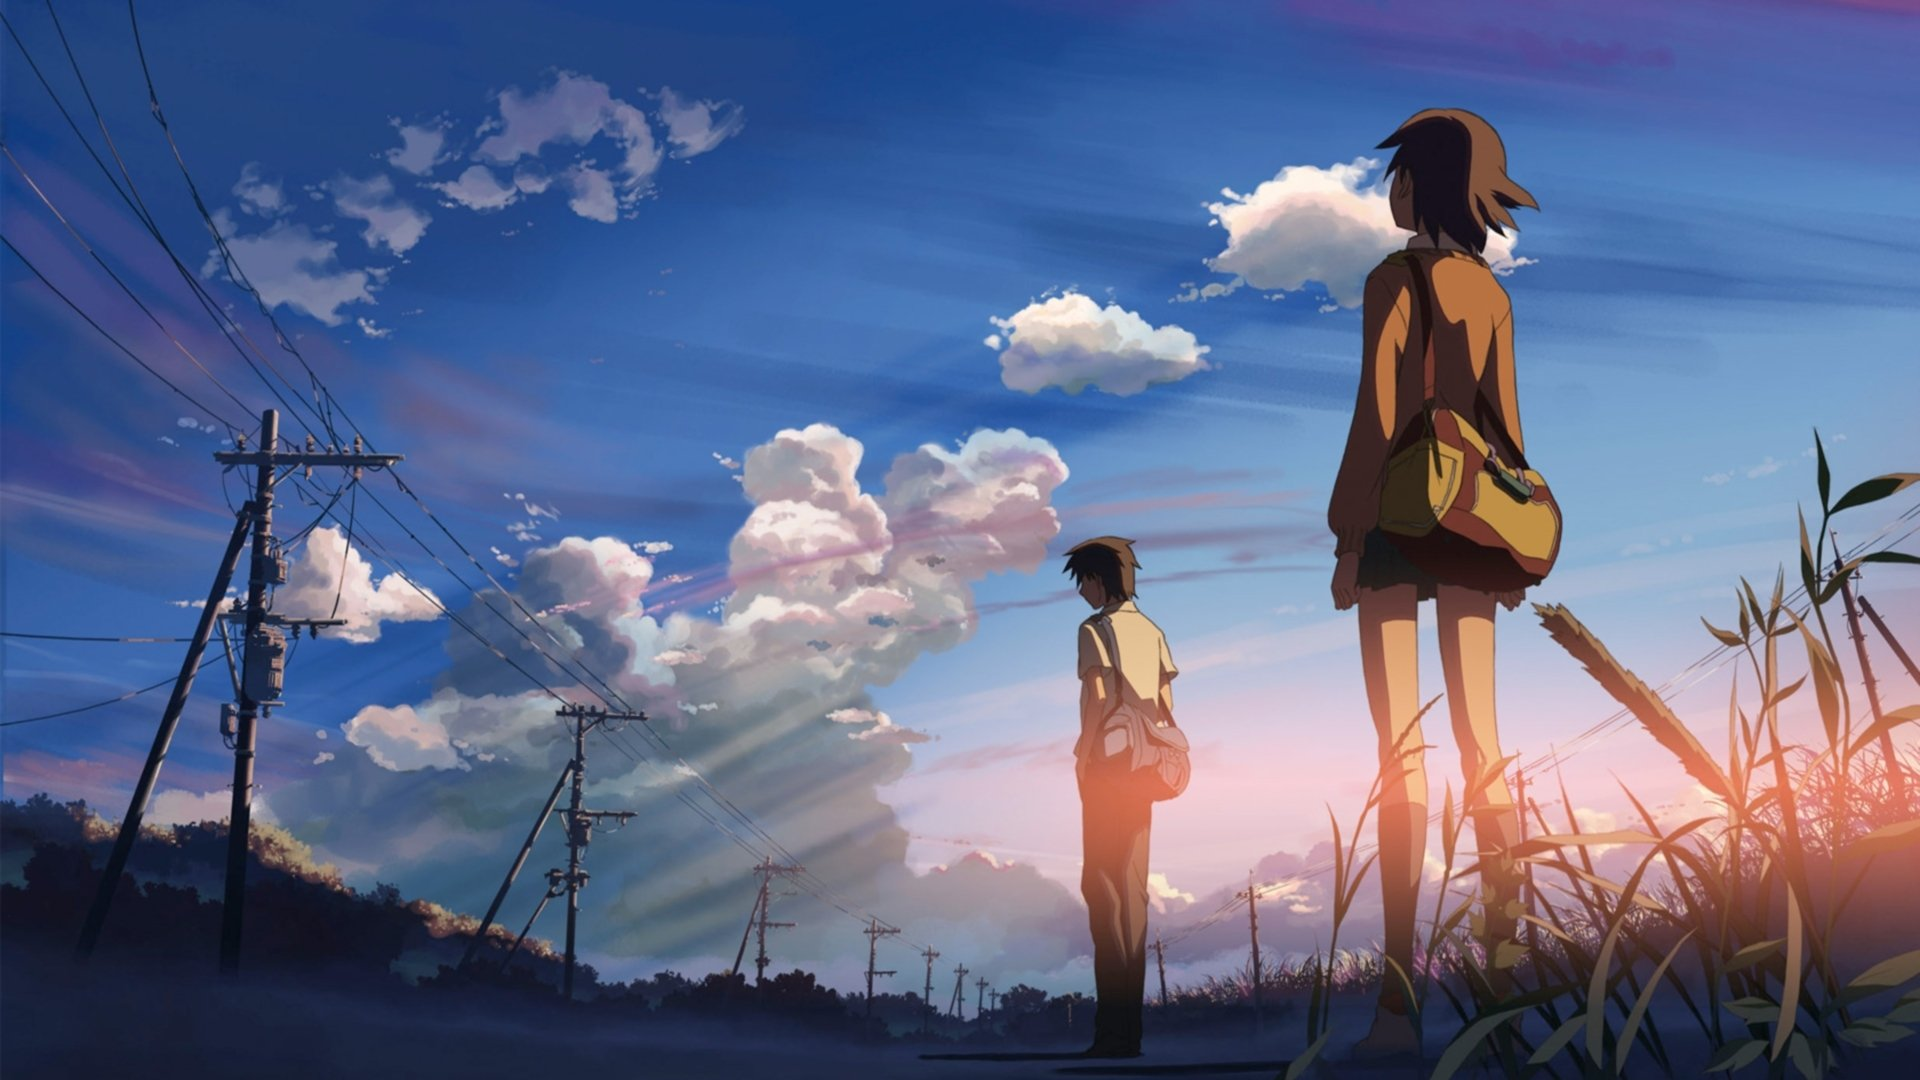 Aesthetic Anime Wallpapers 20 Images Wallpaperboat